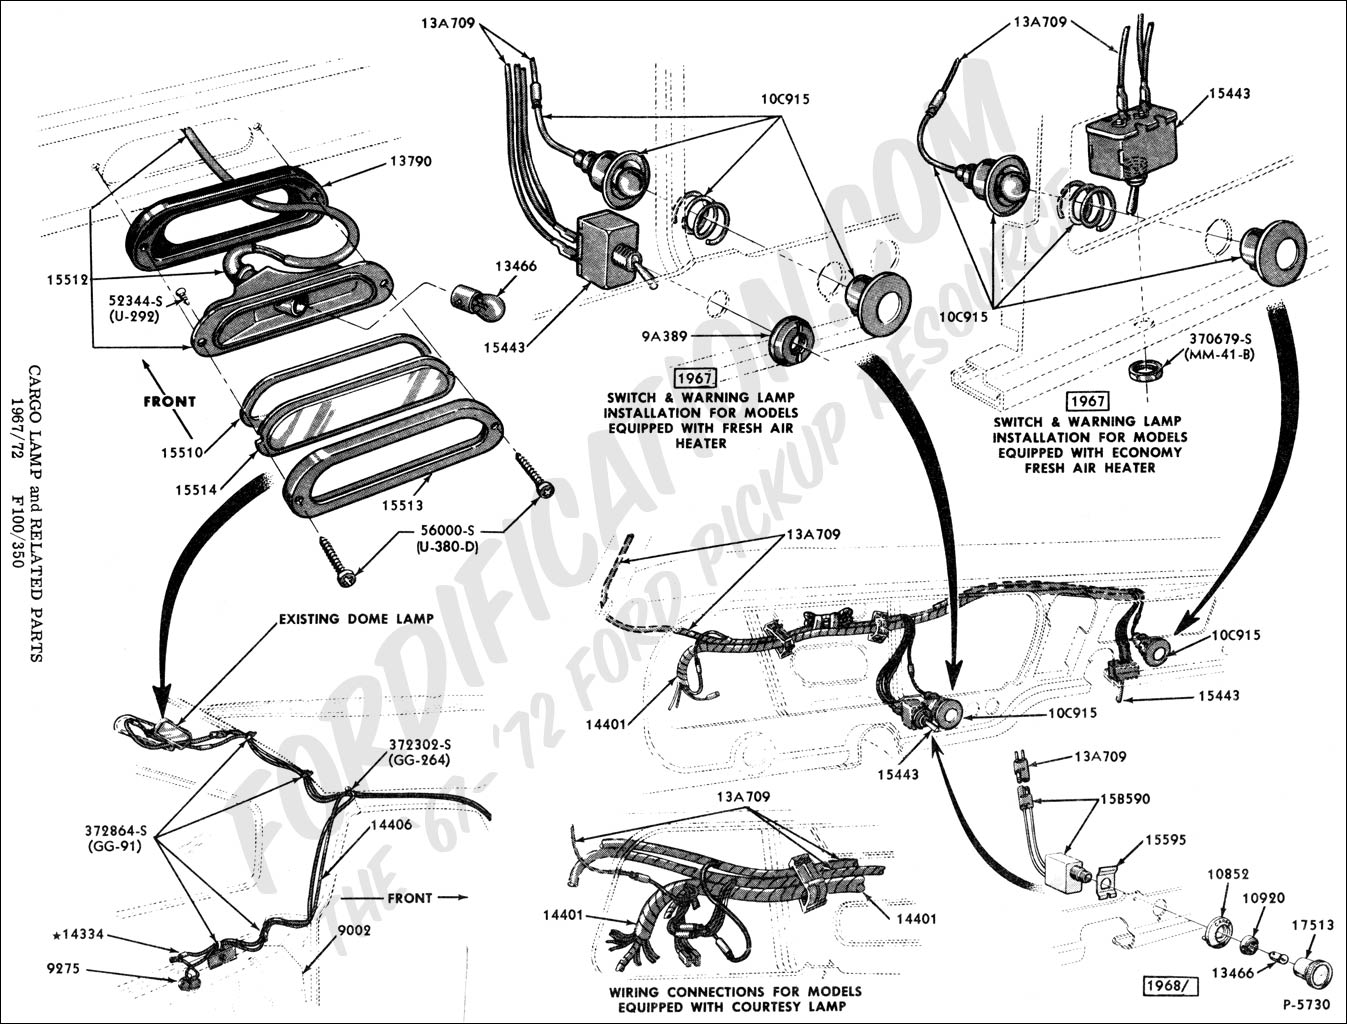 Ford Escape Mirror Parts Diagram Not Lossing Wiring 2013 Flex Truck Technical Drawings And Schematics Section I 2002